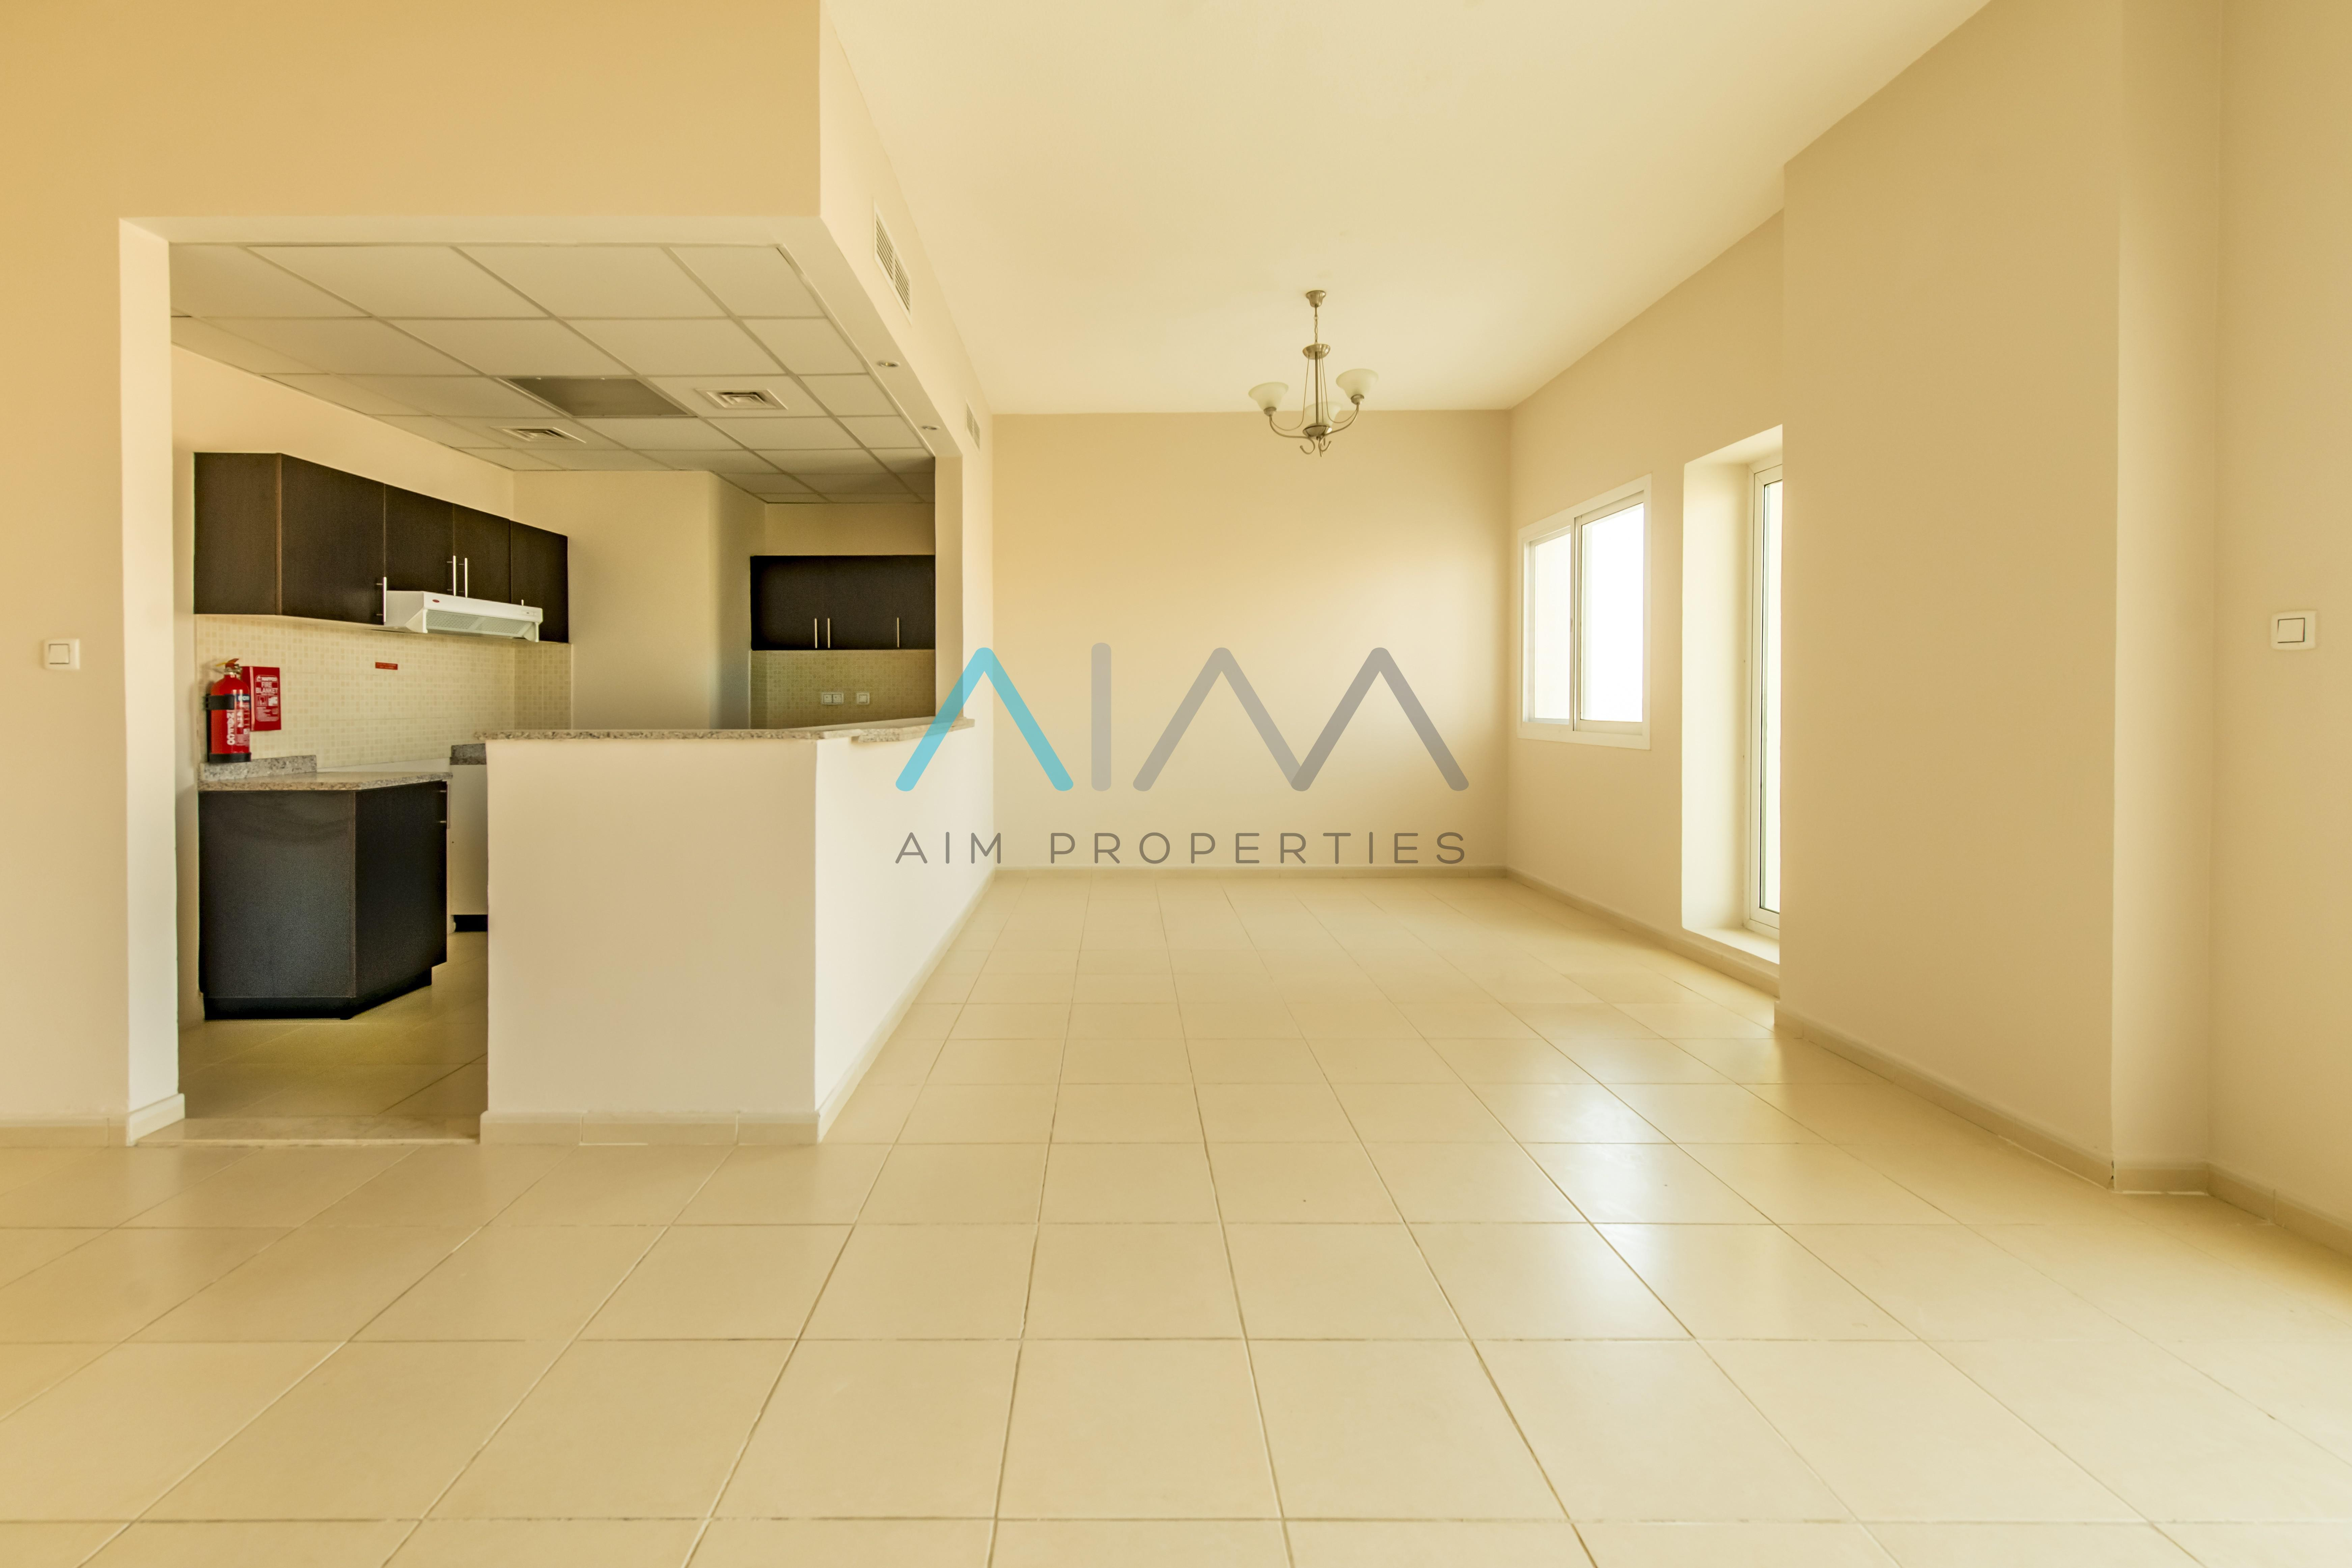 EXQUISITE LAYOUT WITH SQUARE SHAPE 1BR..